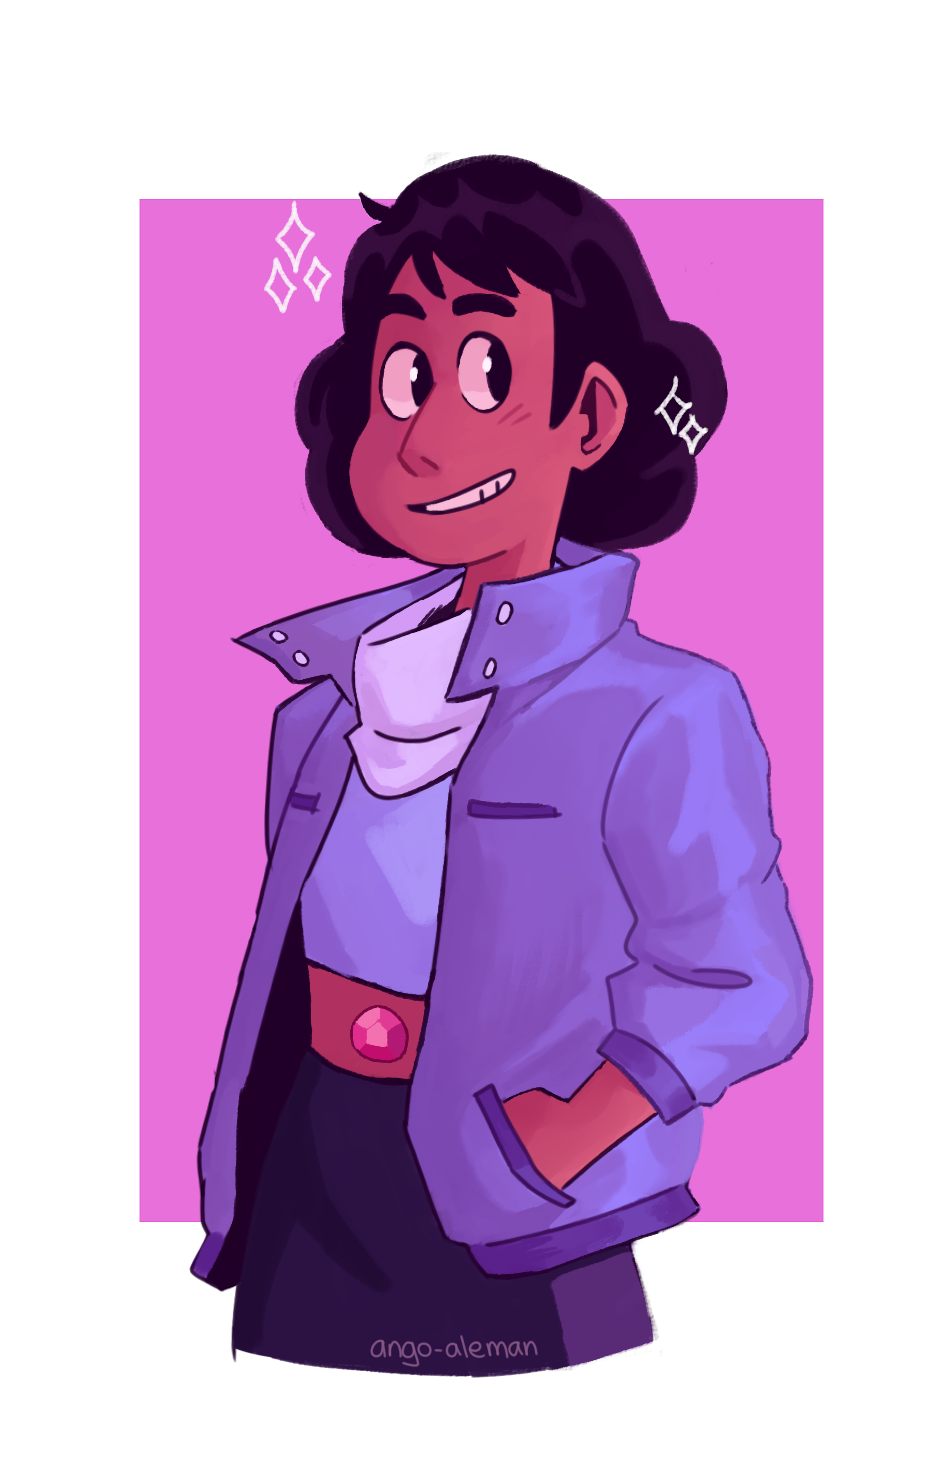 OKAY but stevonnie with short hair and steven's jacket???? i need it